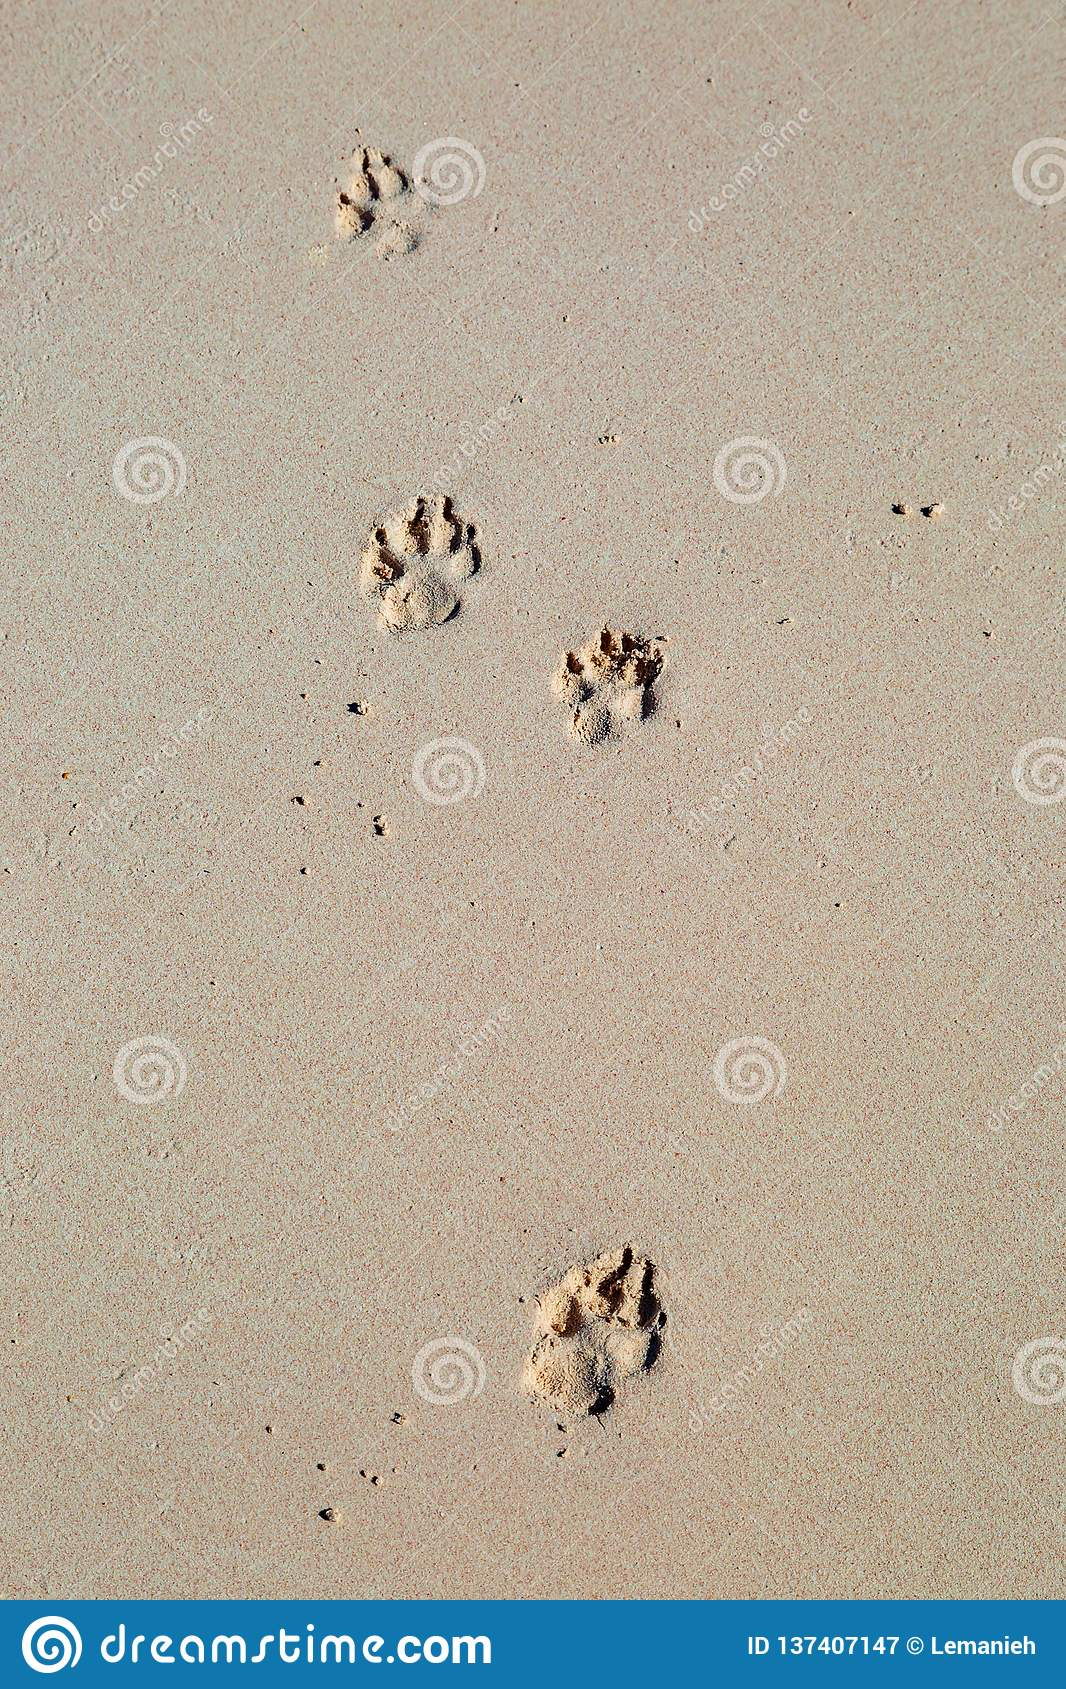 7a2842c98 Paw Prints in the Sand stock image. Image of scenic - 137407147